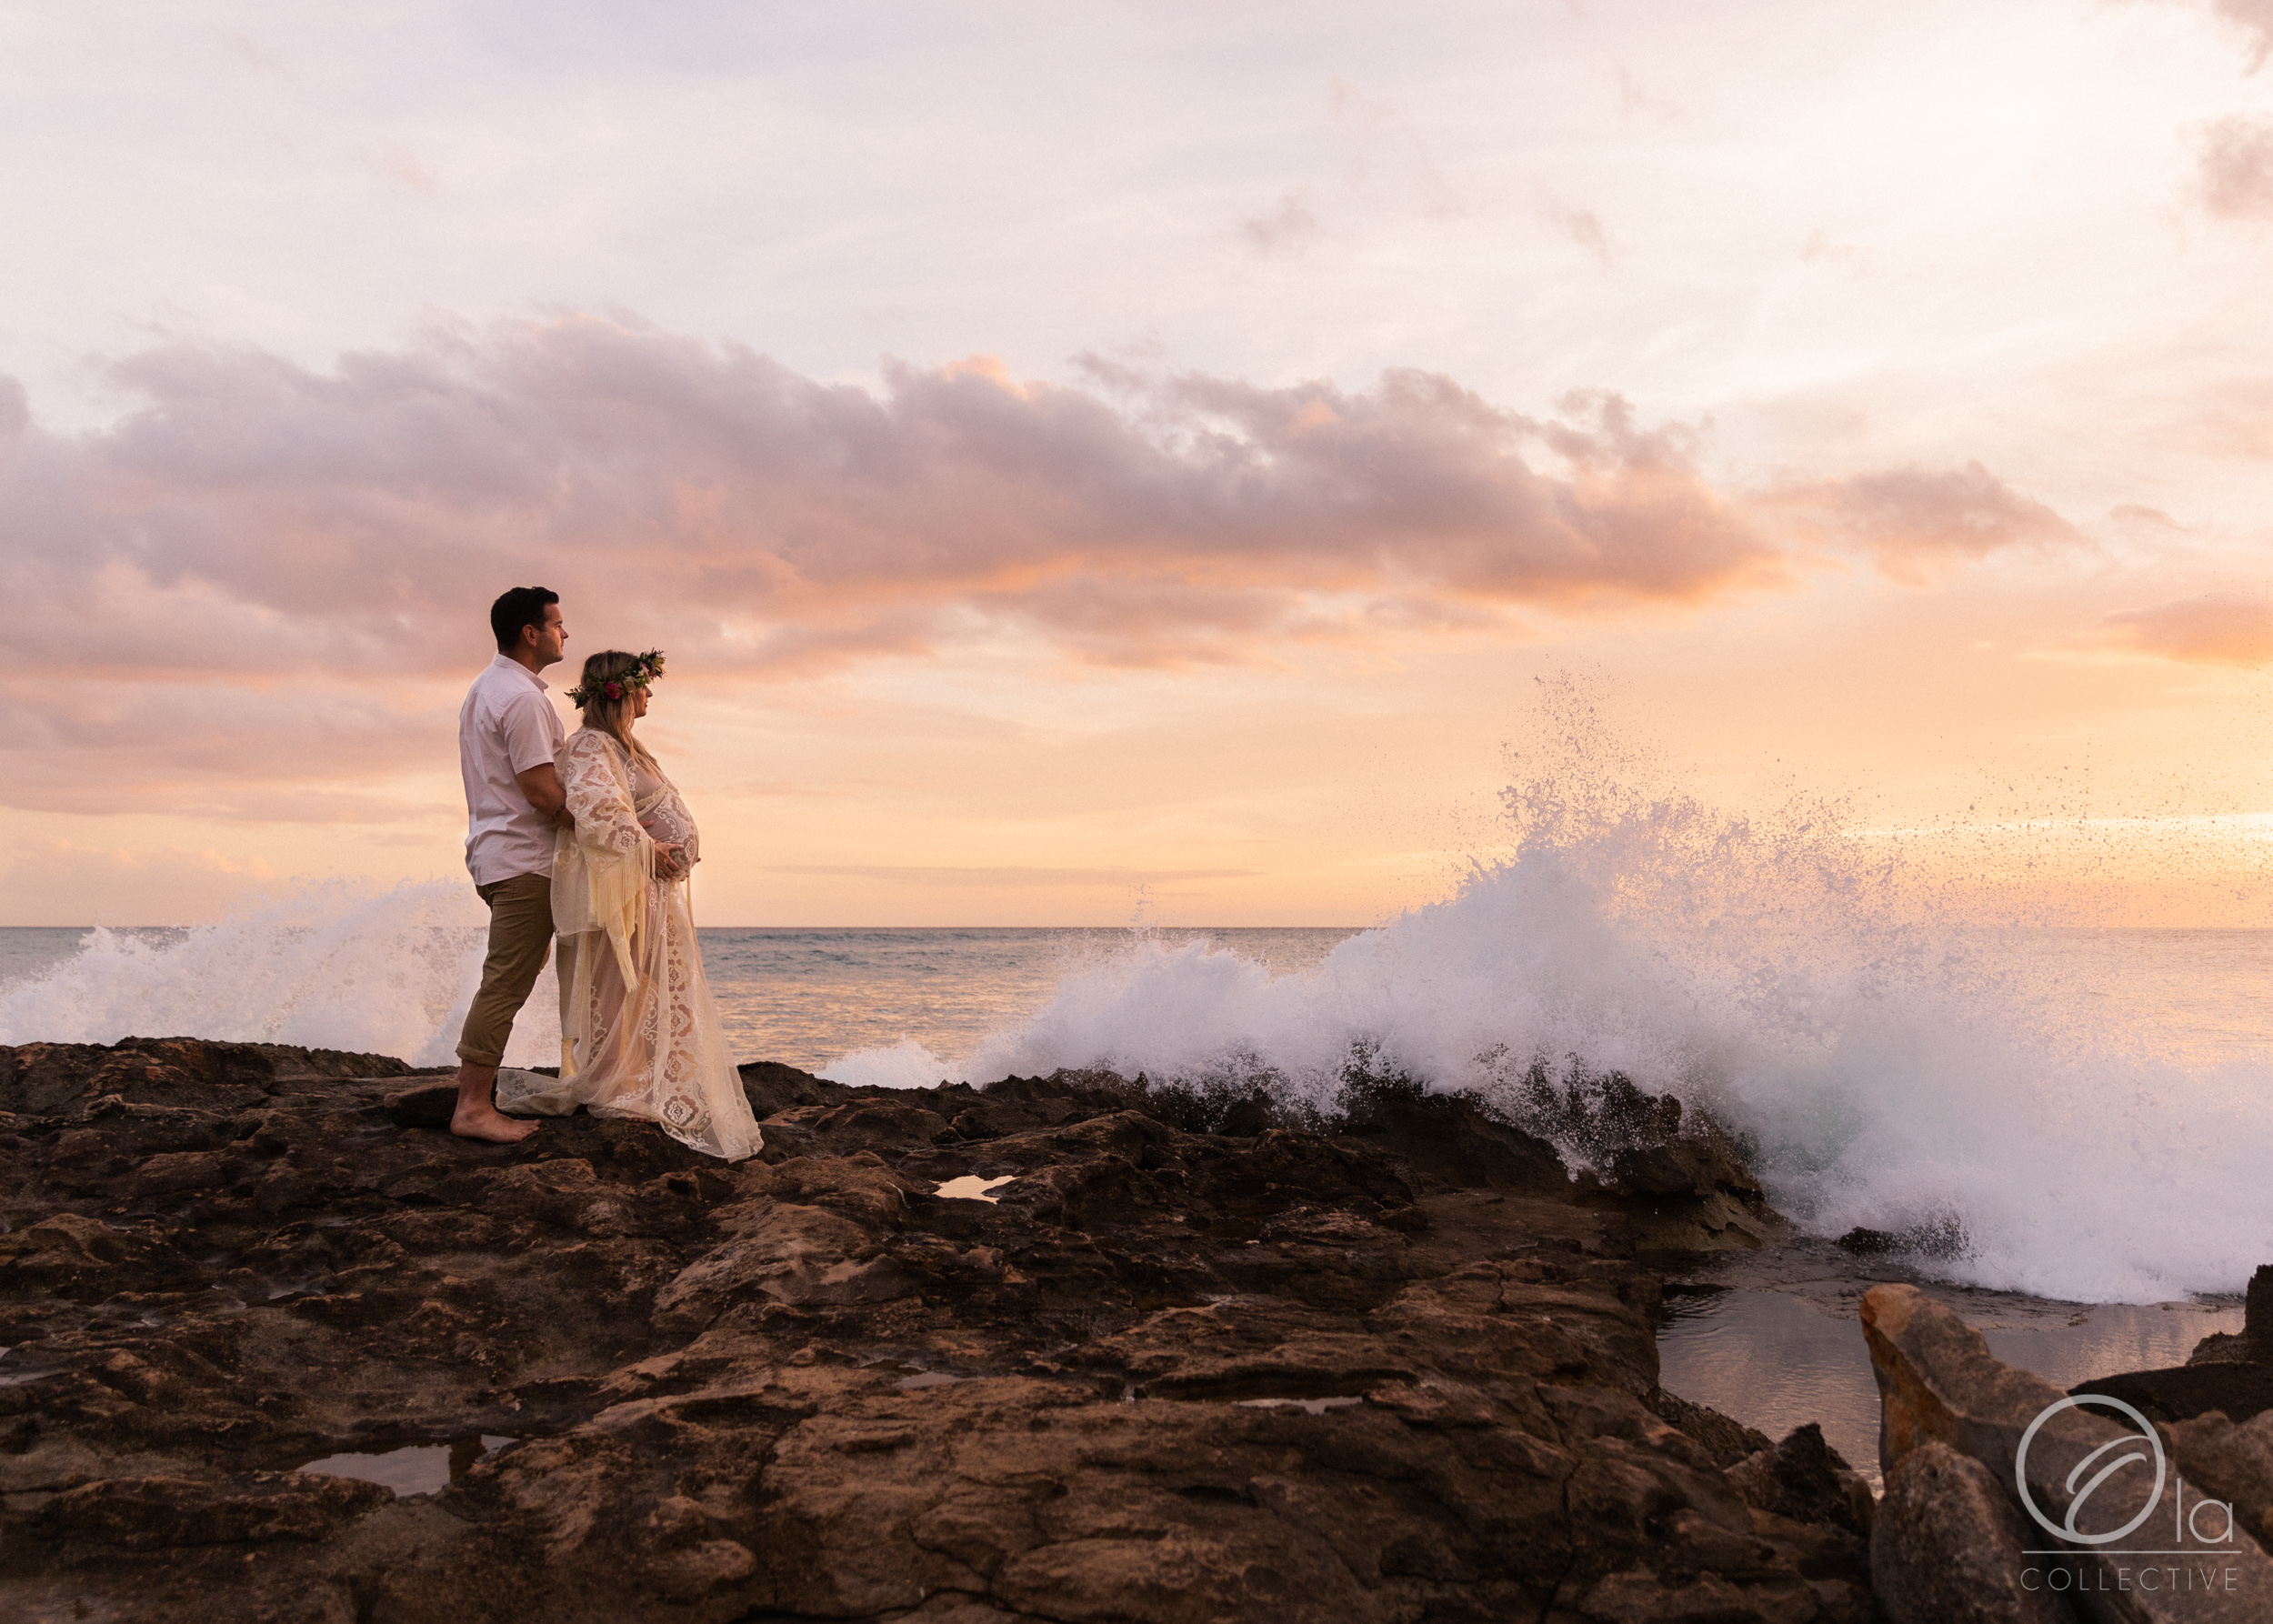 Four-Seasons-Oahu-Family-Photographer-Ola-Collective-8.jpg